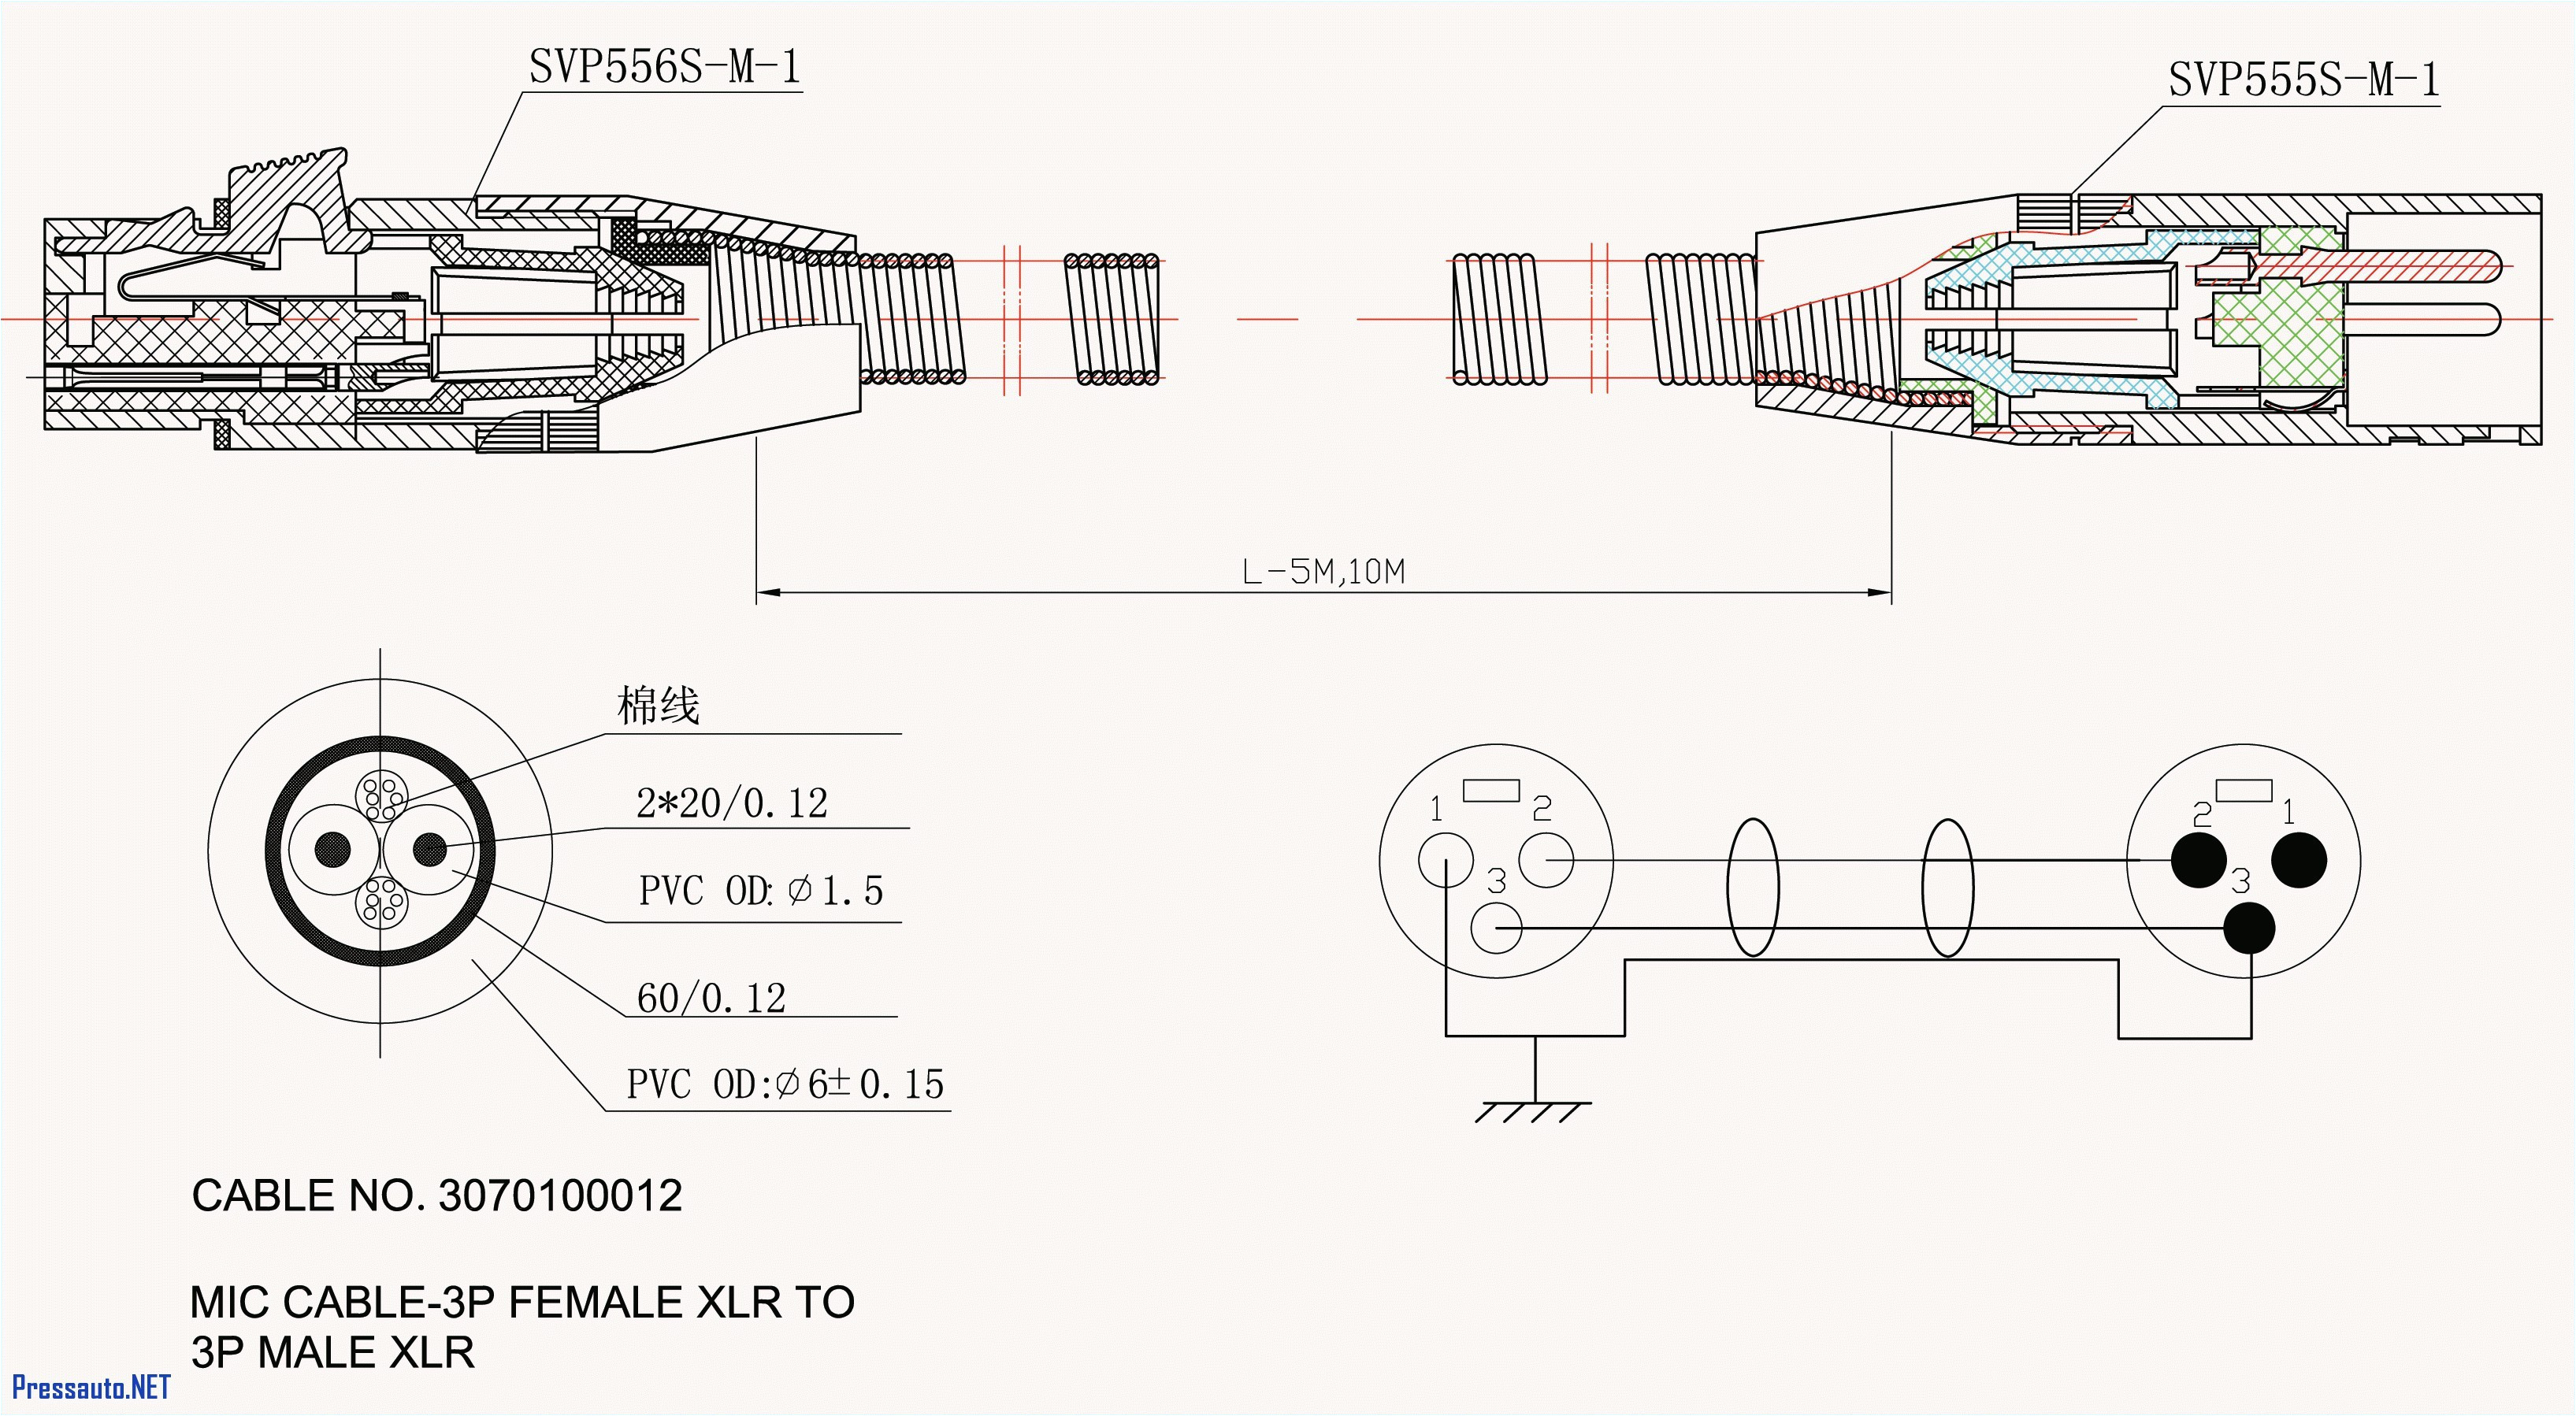 1965 mustang wiring diagram awesome wiring diagram for 65 mustang alternator reference unique alternator jpg